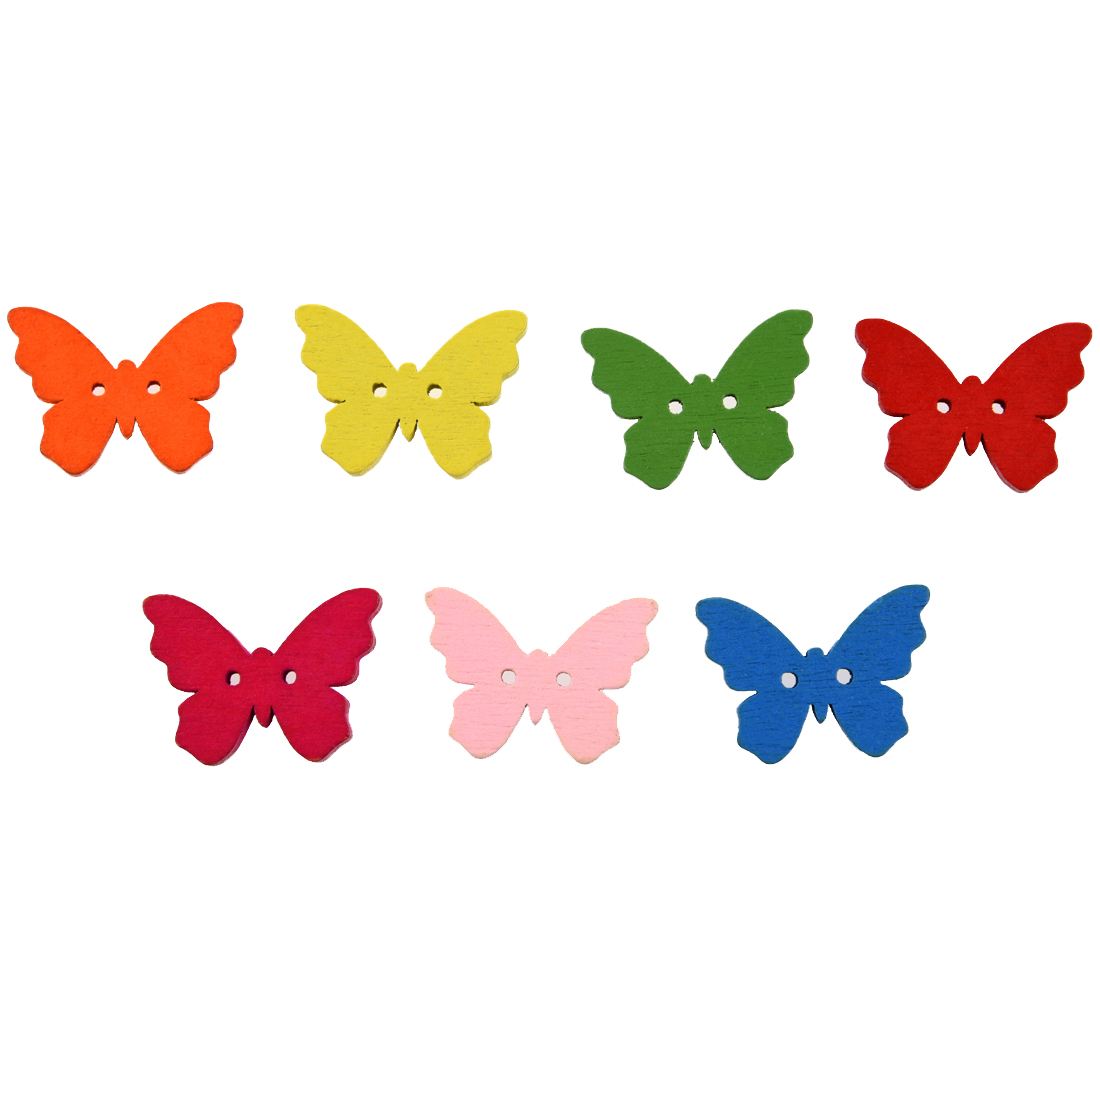 HGHO-Pack of 50 Colorful 2 Holes Wooden Butterfly Buttons, for DIY, Sewing, Scrapbooking, Crafts, Jewellery making, shabby chic